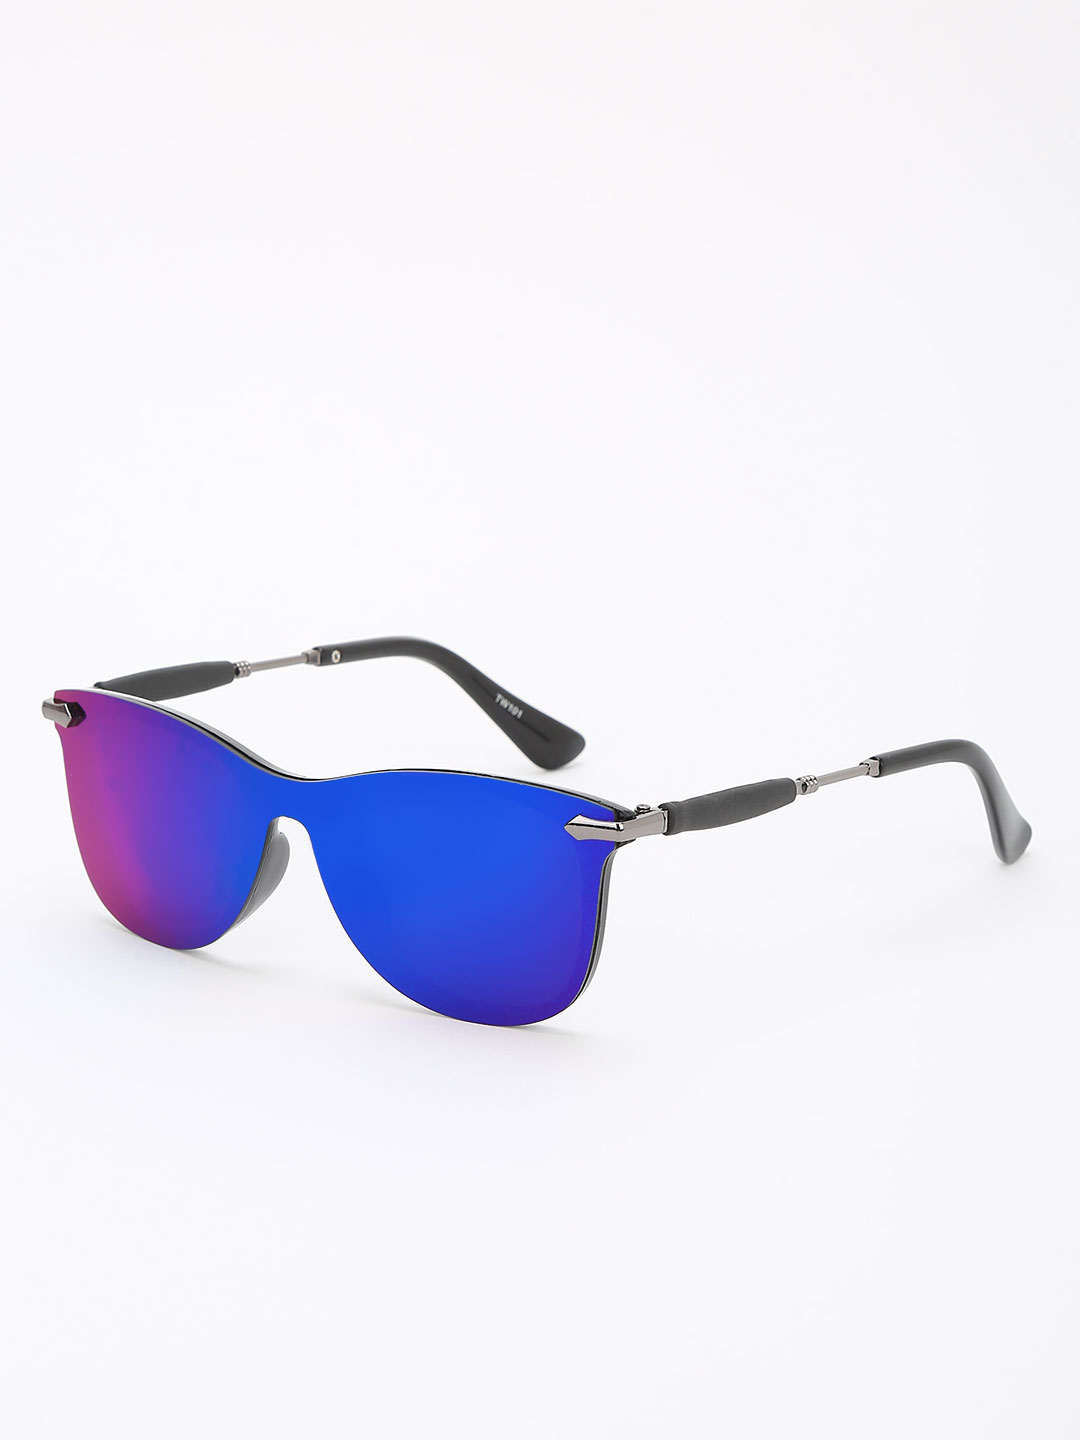 KOOVS Green Holographic Lens Reflective Sunglasses 1